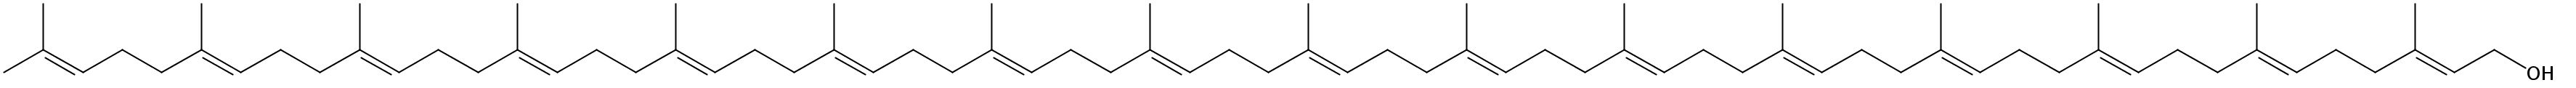 Structural formula of Hexadecaprenol